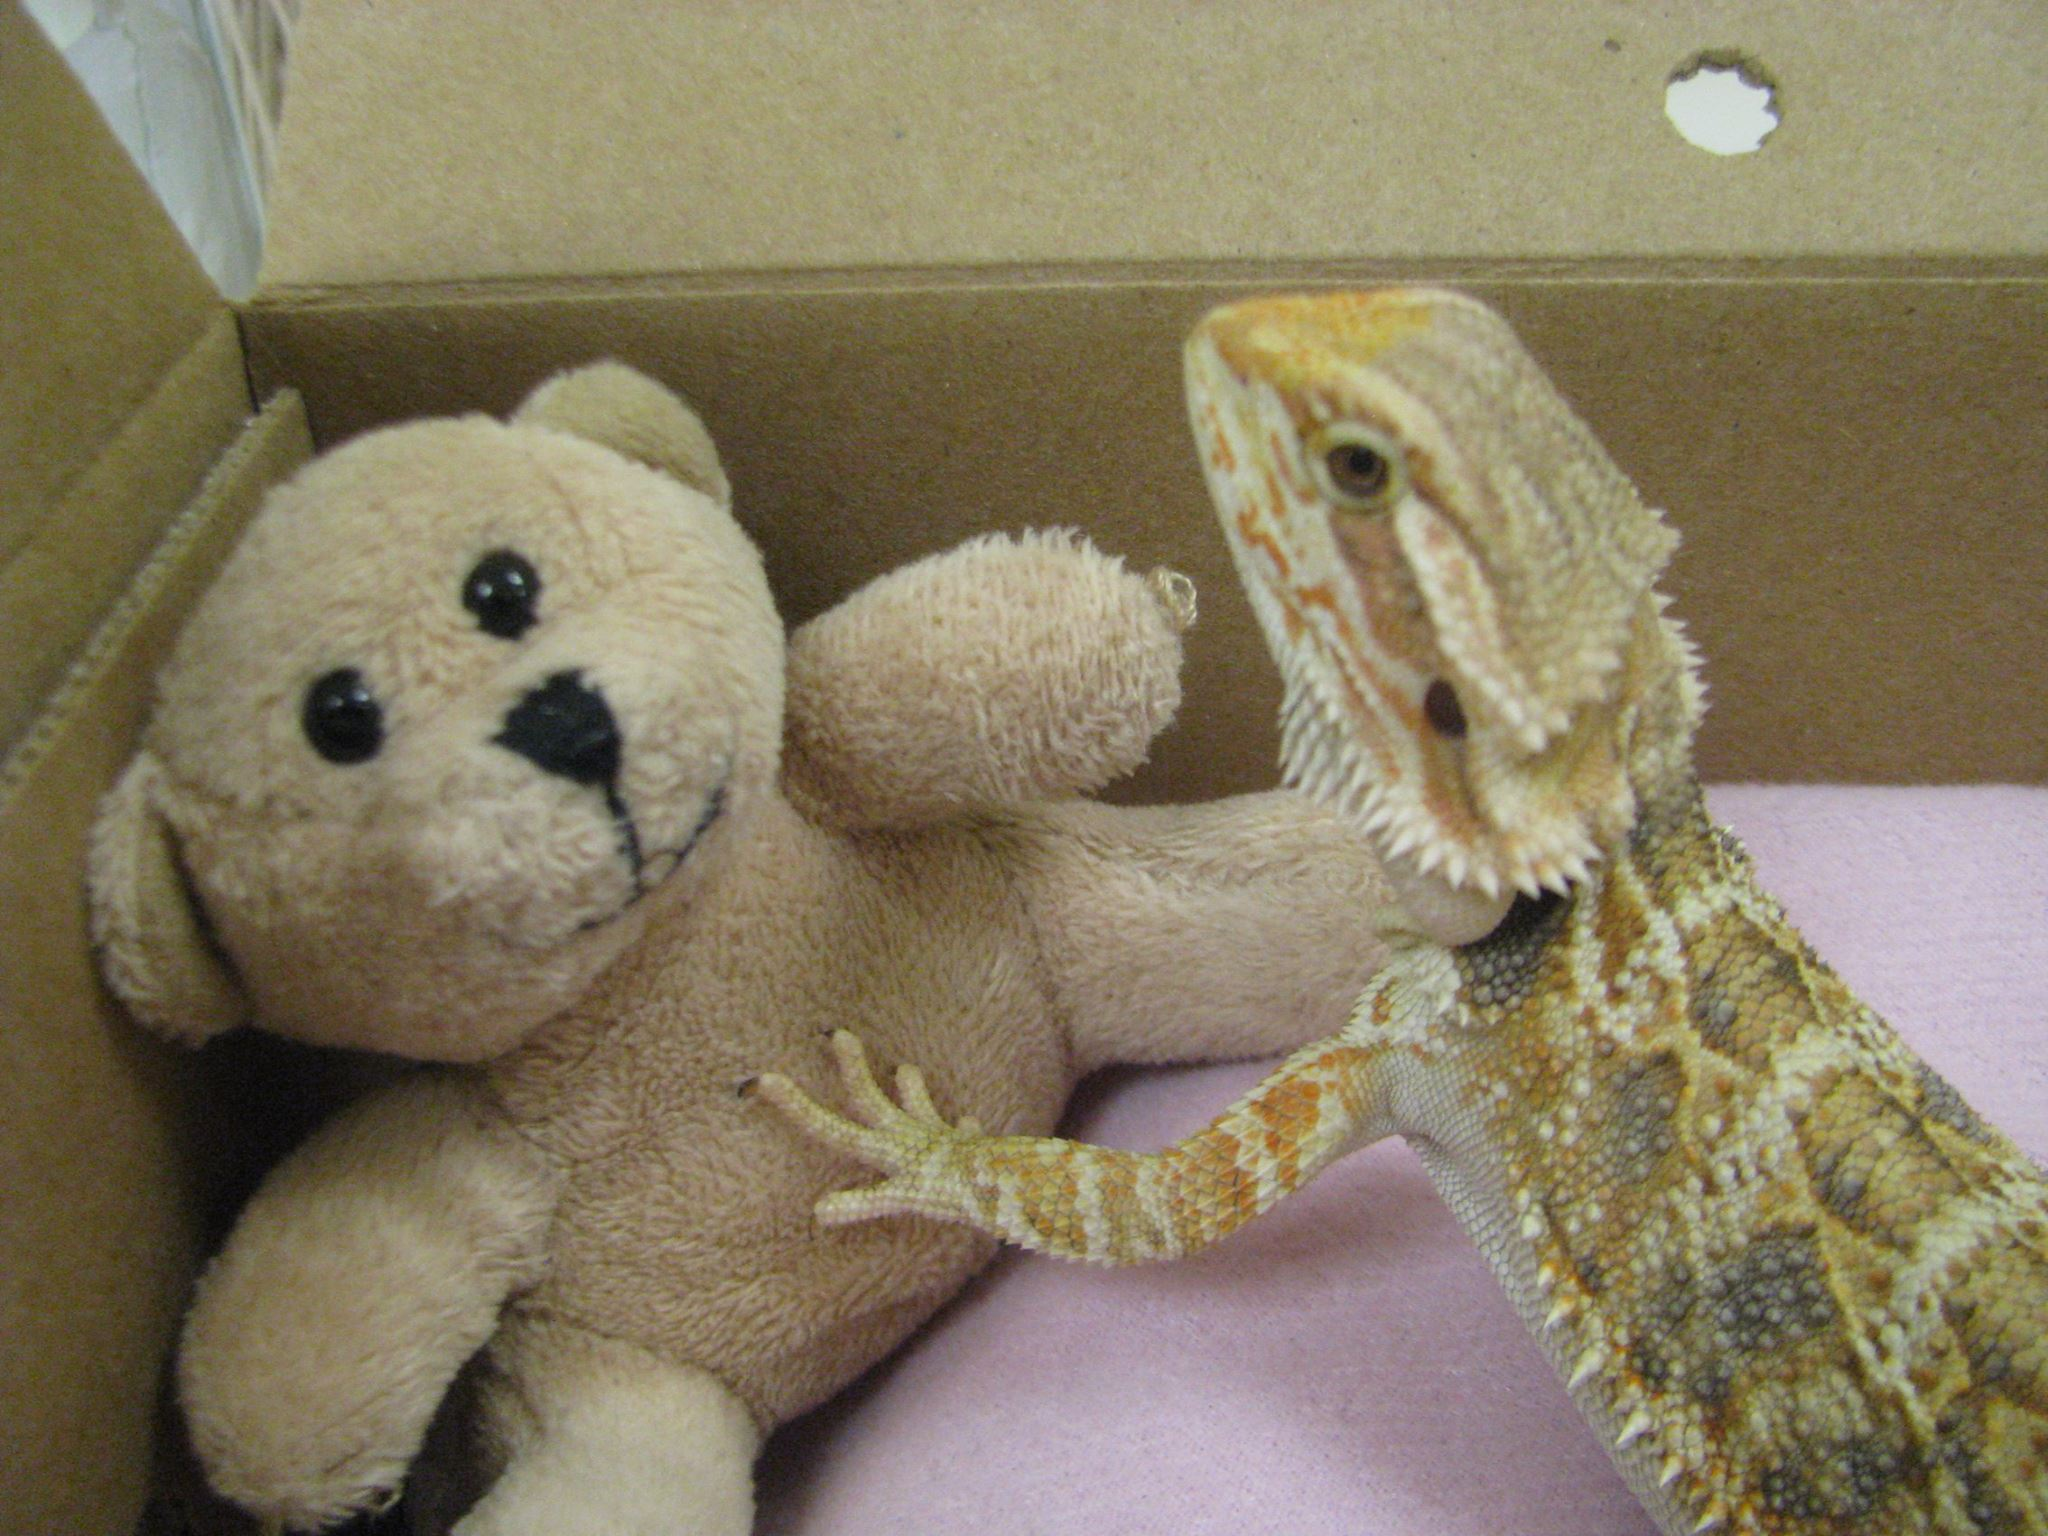 https://0901.nccdn.net/4_2/000/000/06b/a1b/beardie-and-teddy.jpg